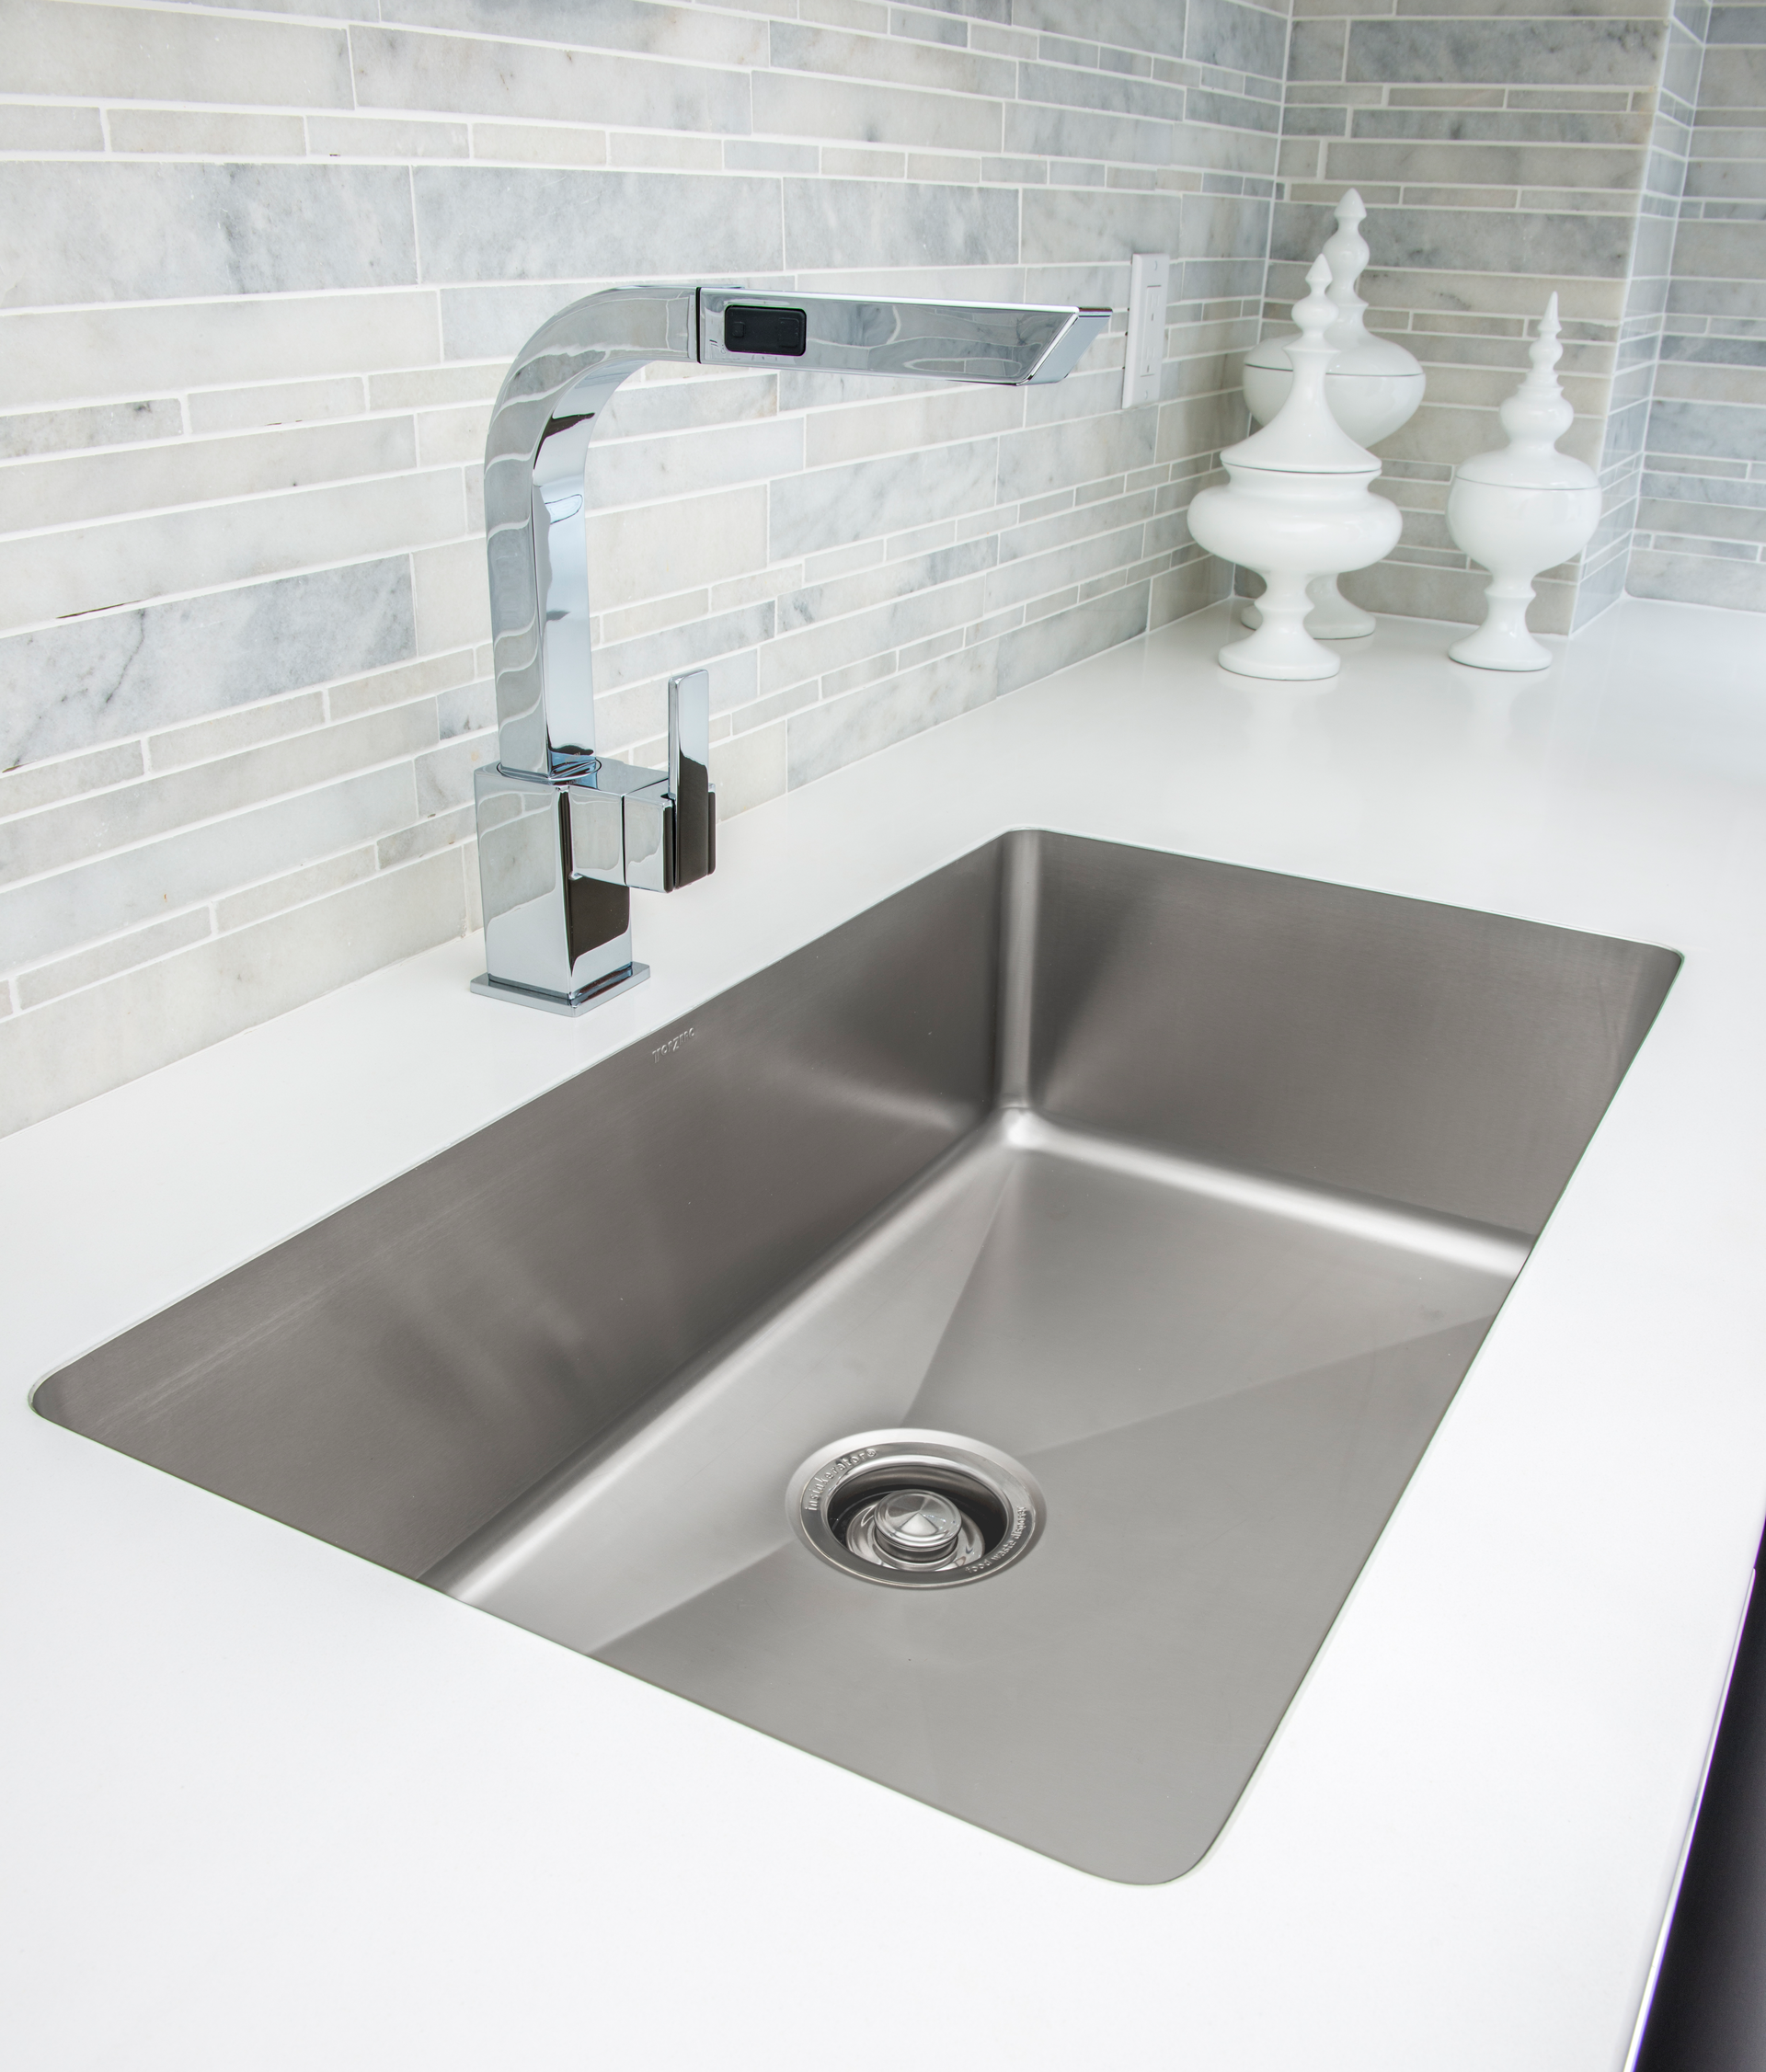 porcelin kitchen sinks seamless edge sink for residential pro 1599